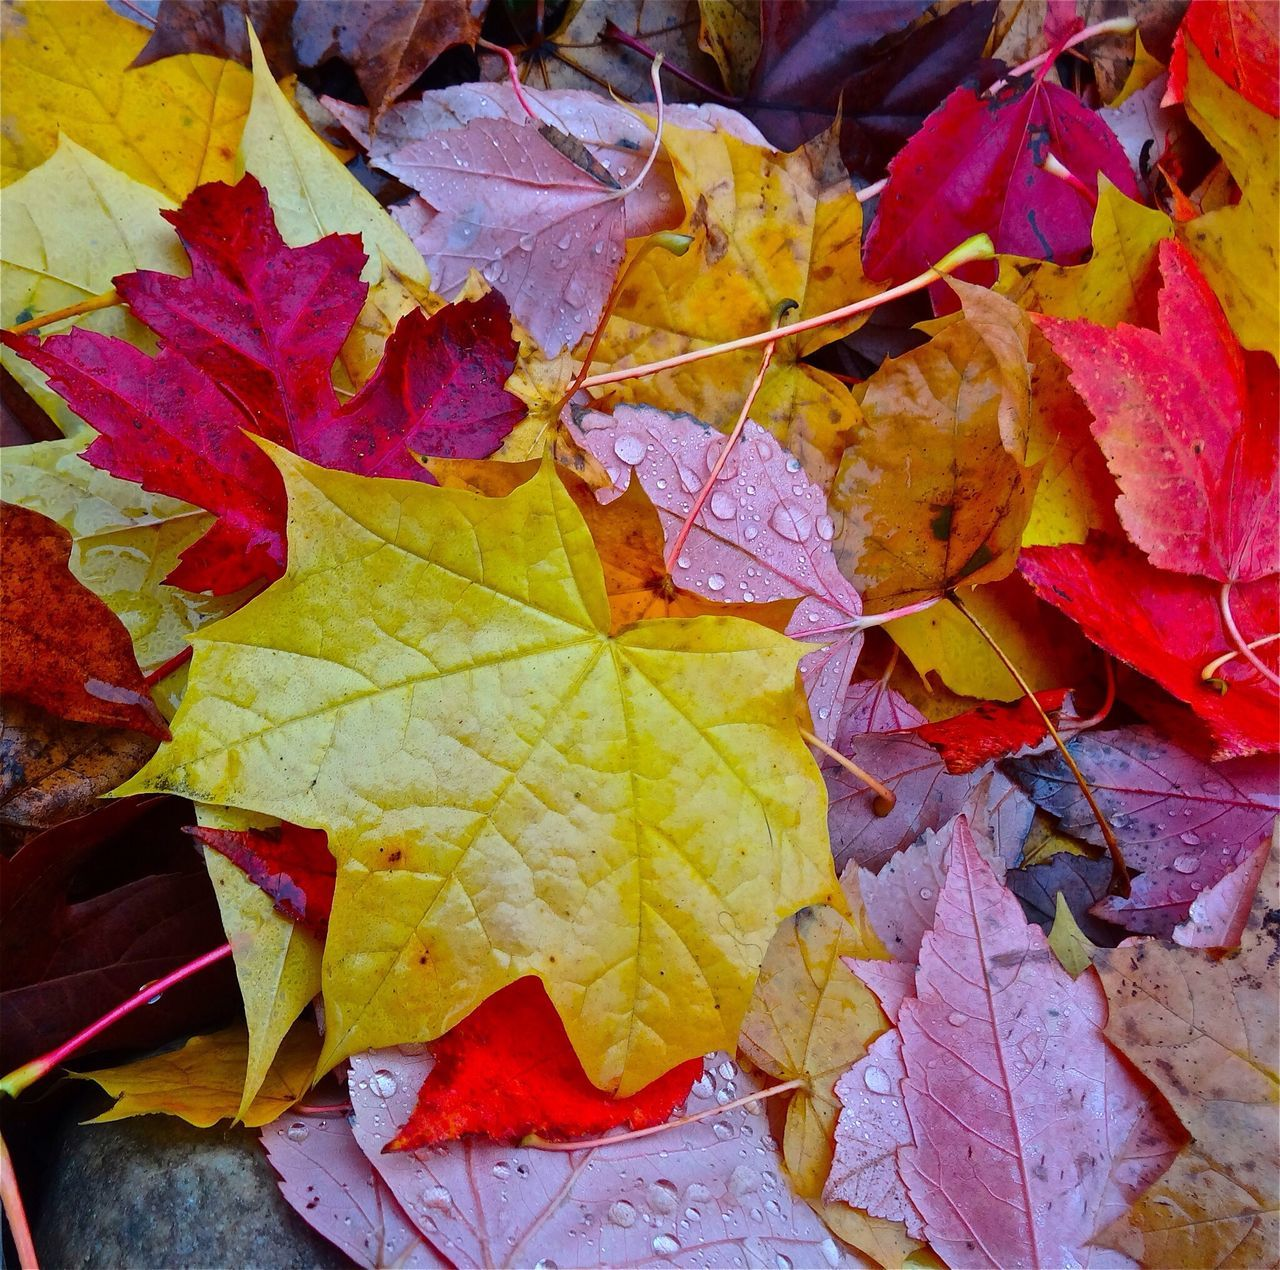 EyeEm Best Shots - Autumn / Fall EyeEm Nature Lover Macro_collection Color Explosion